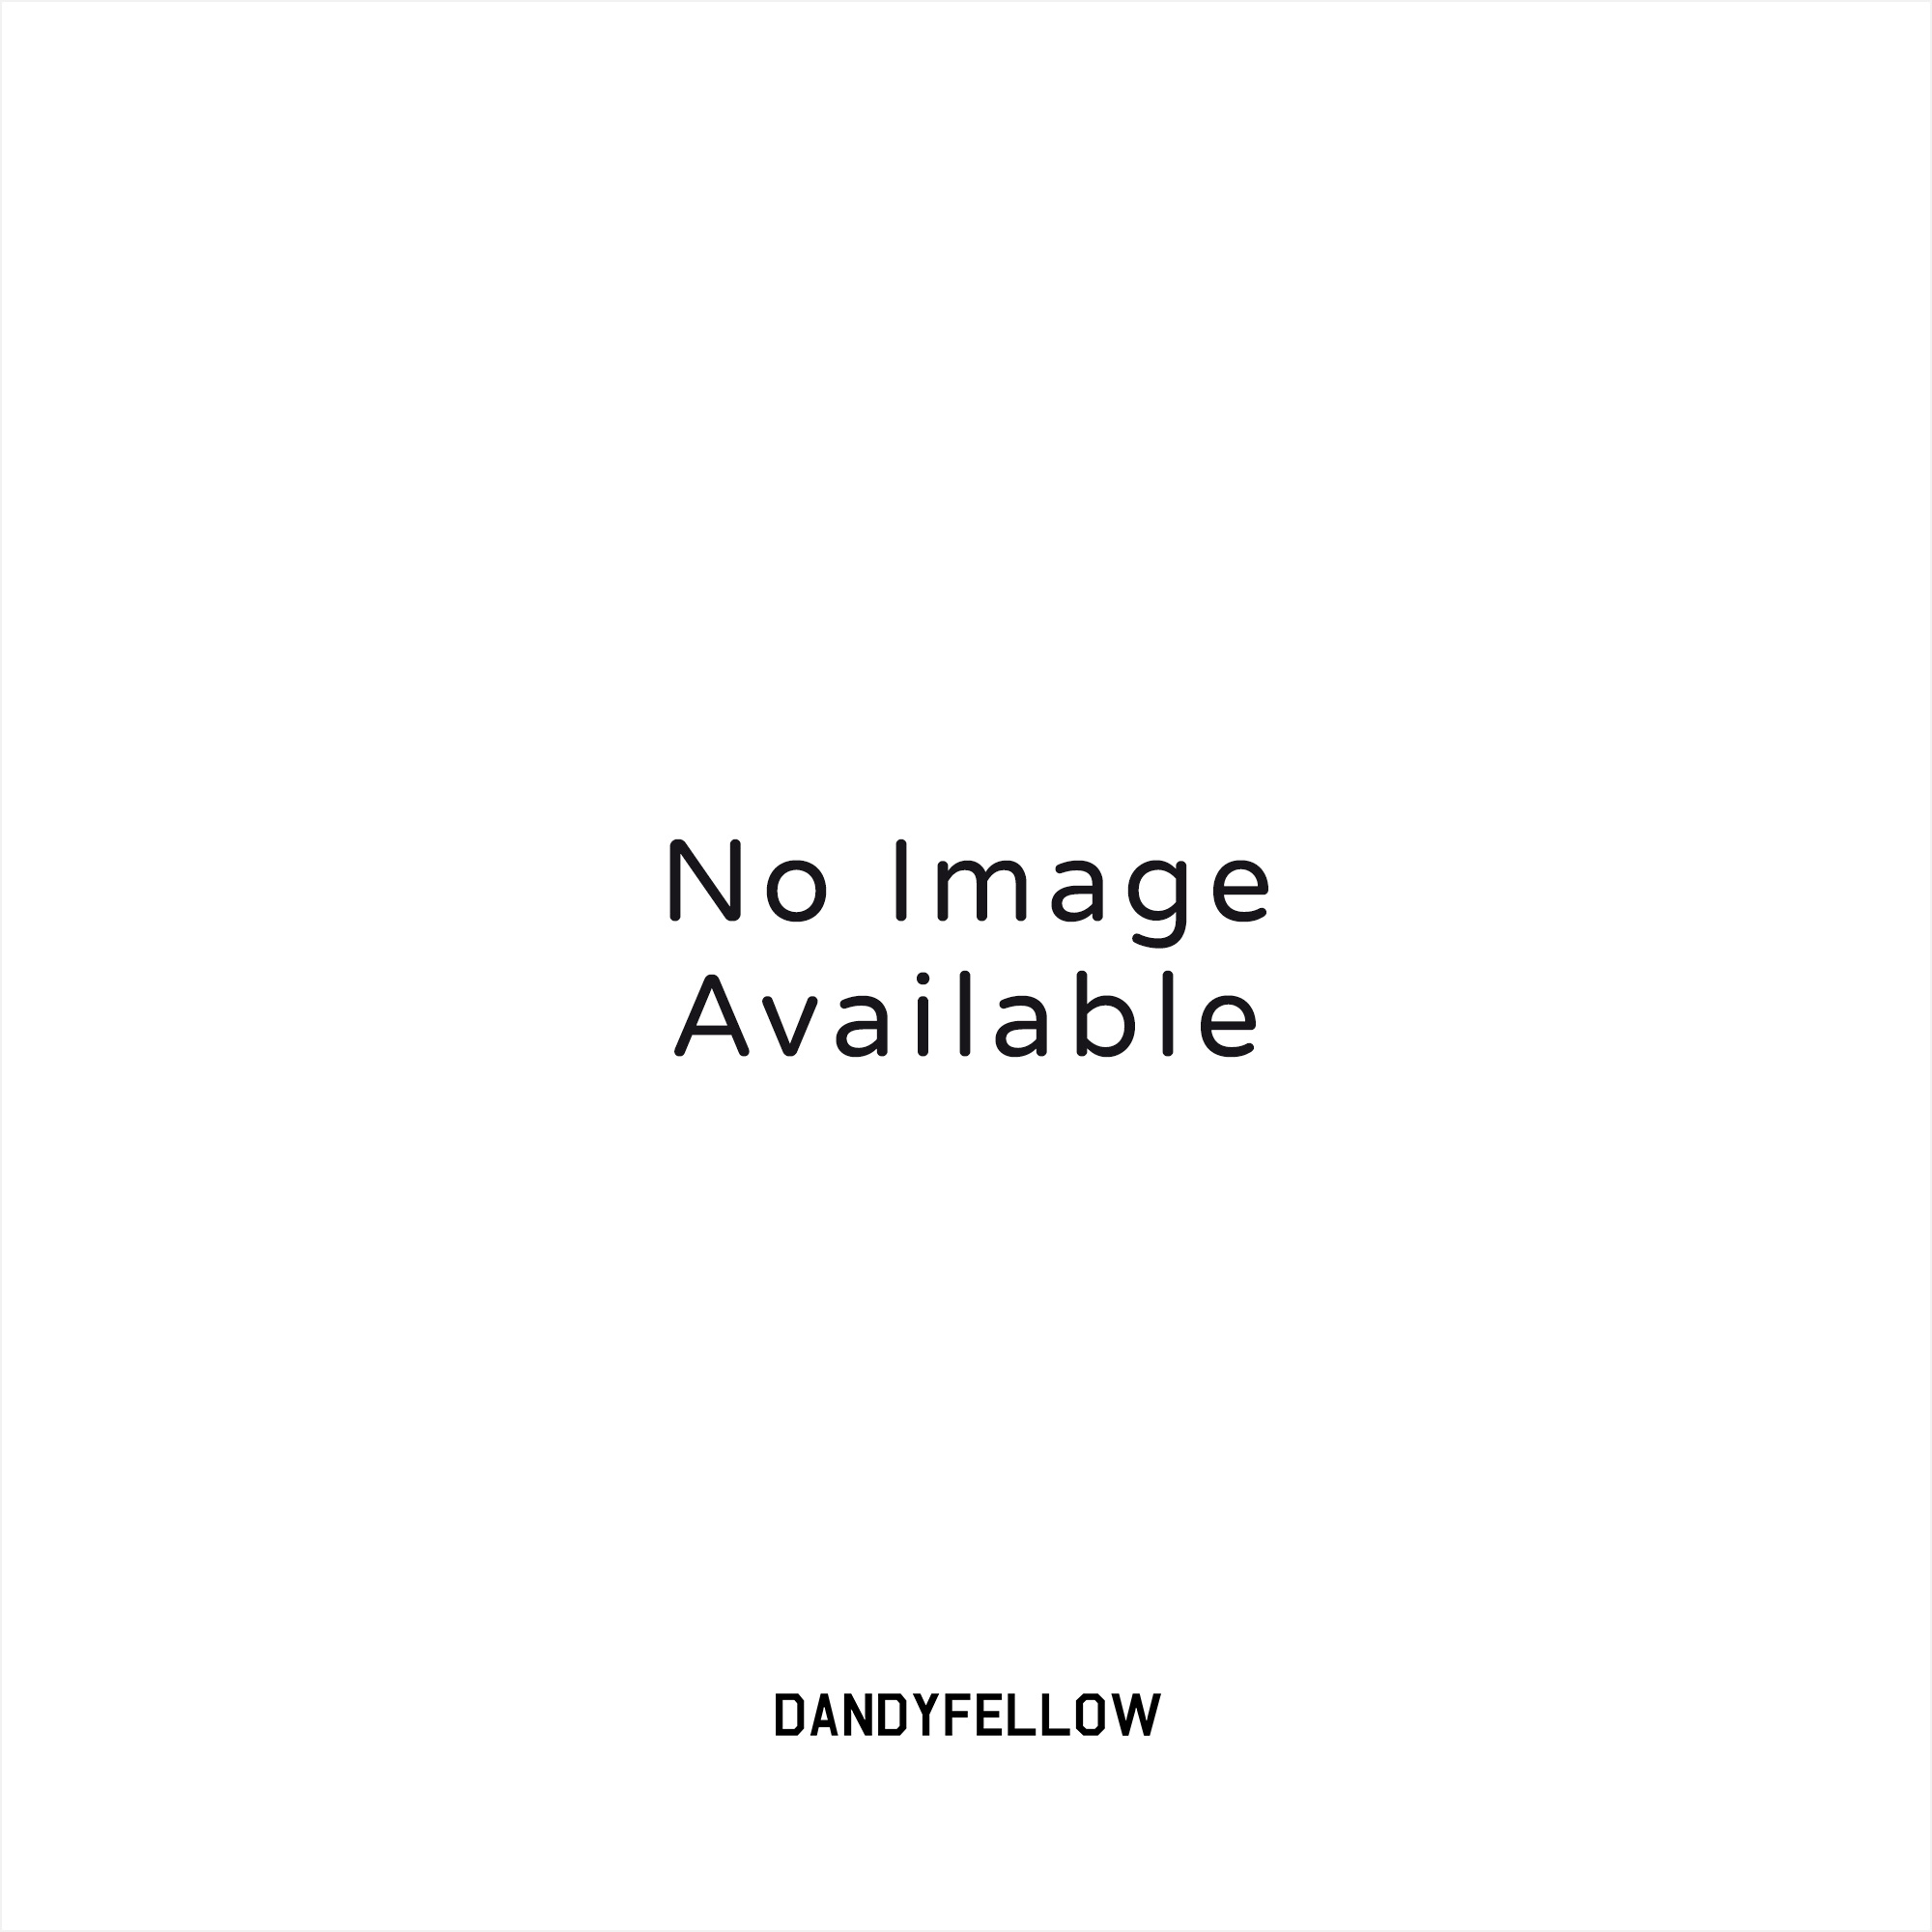 6bb94cb6cf5 Bally New Competition Sneakers (White) at Dandy Fellow